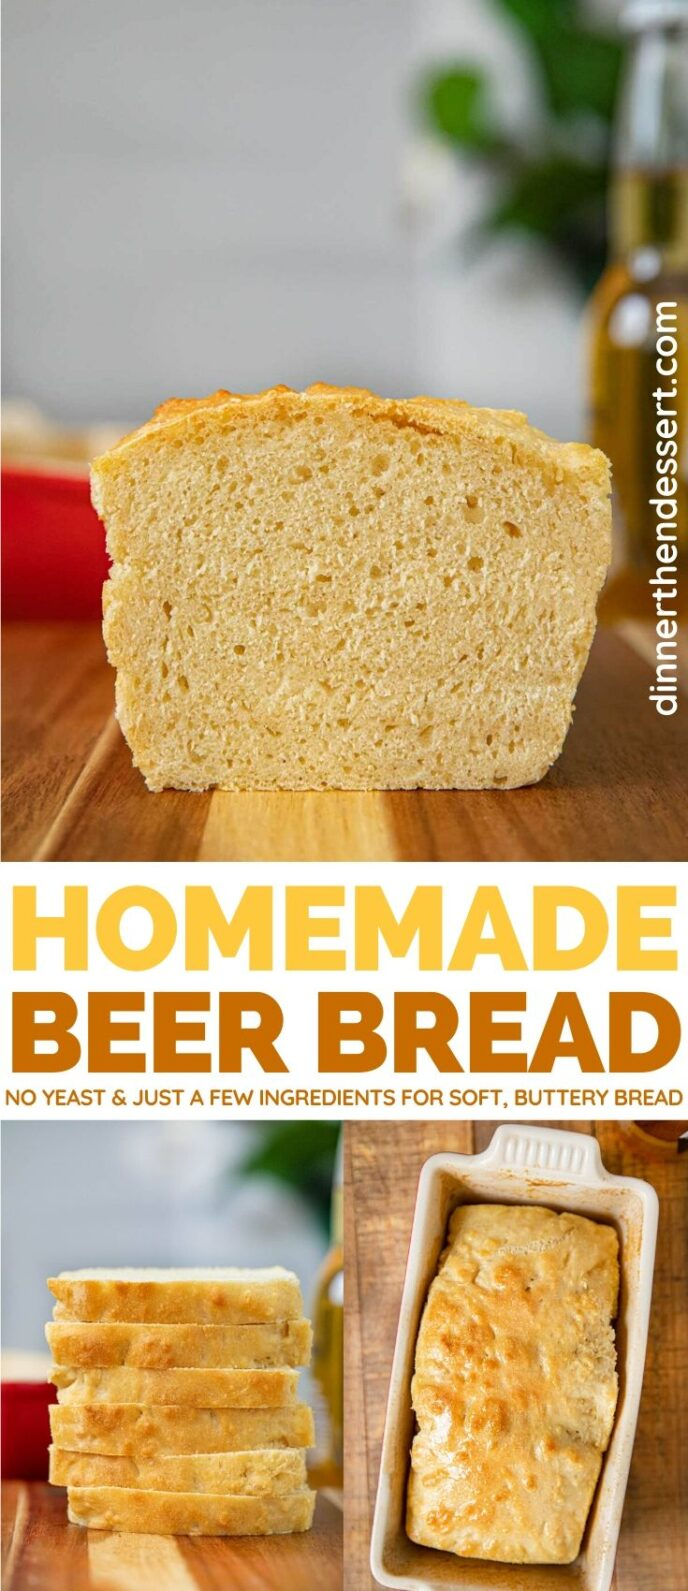 Homenade Beer Bread collage